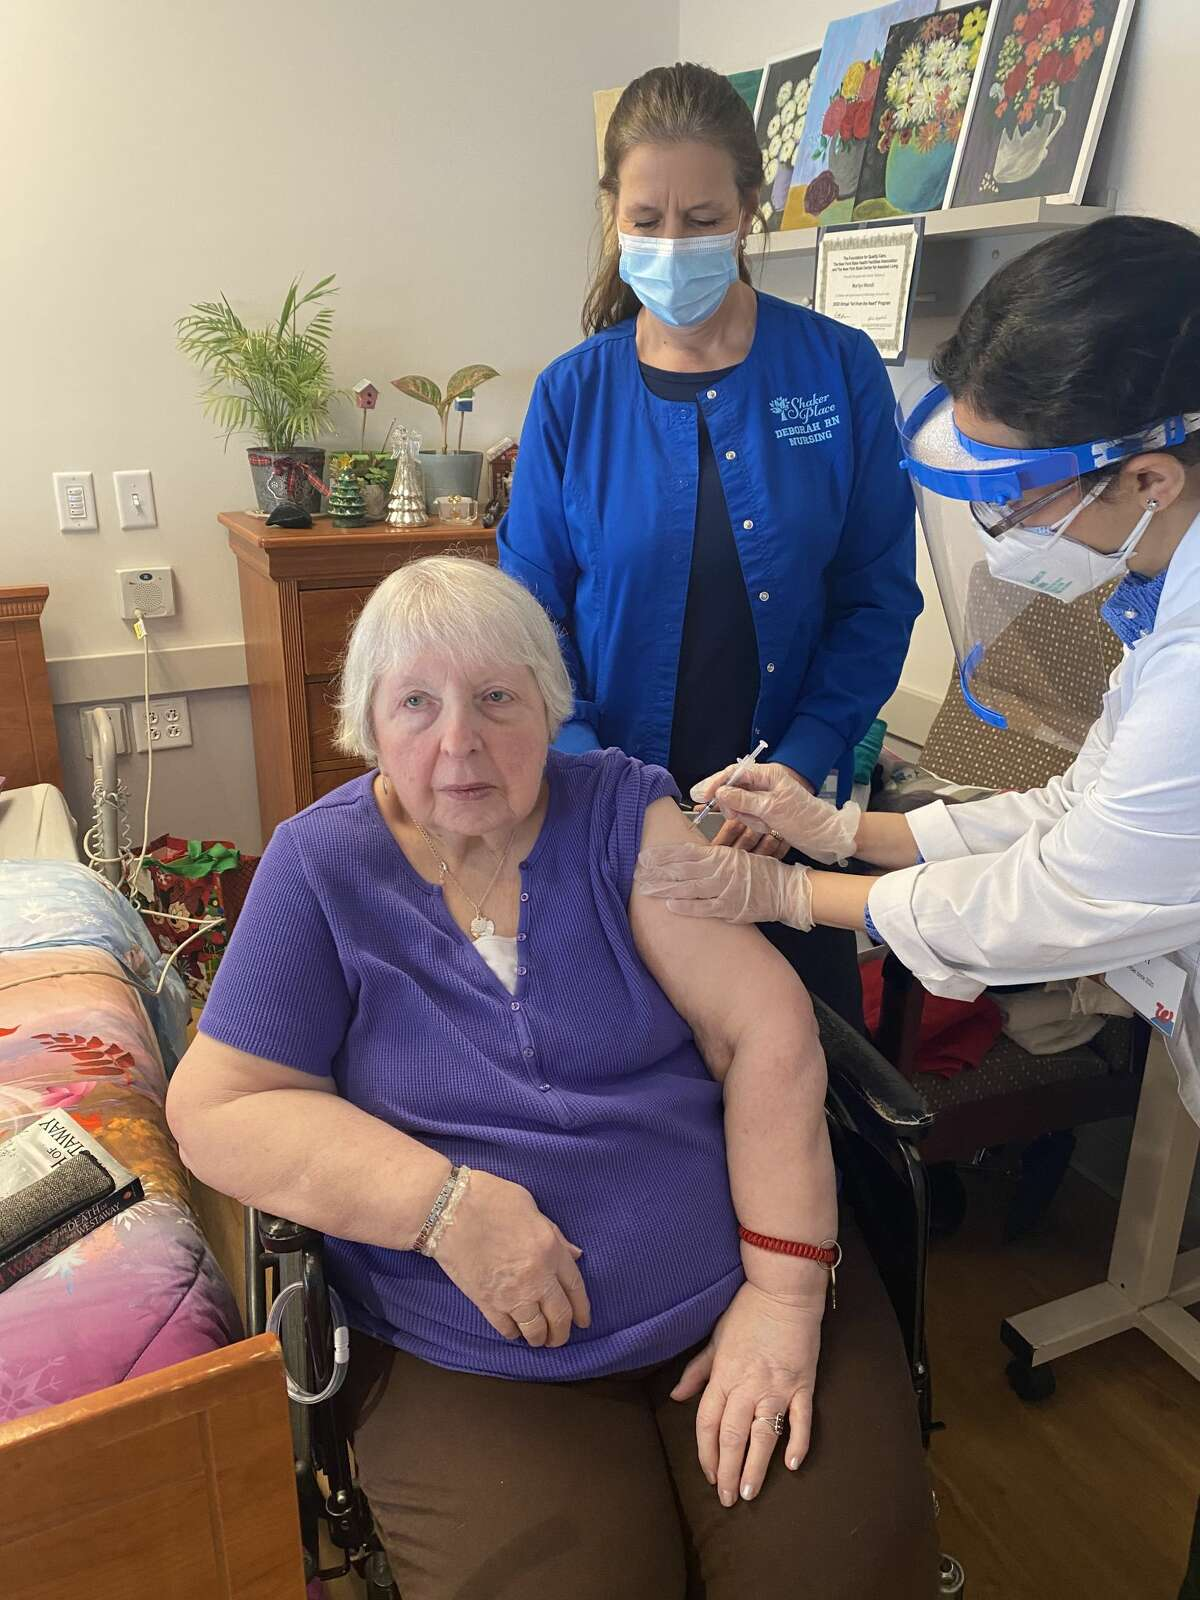 Walgreens staff administer the first COVID-19 vaccine to a resident of the Albany County-run Shaker Place nursing home in Colonie, N.Y. on Monday, Dec. 21, 2020. County officials declined to release the resident's name, citing privacy concerns.